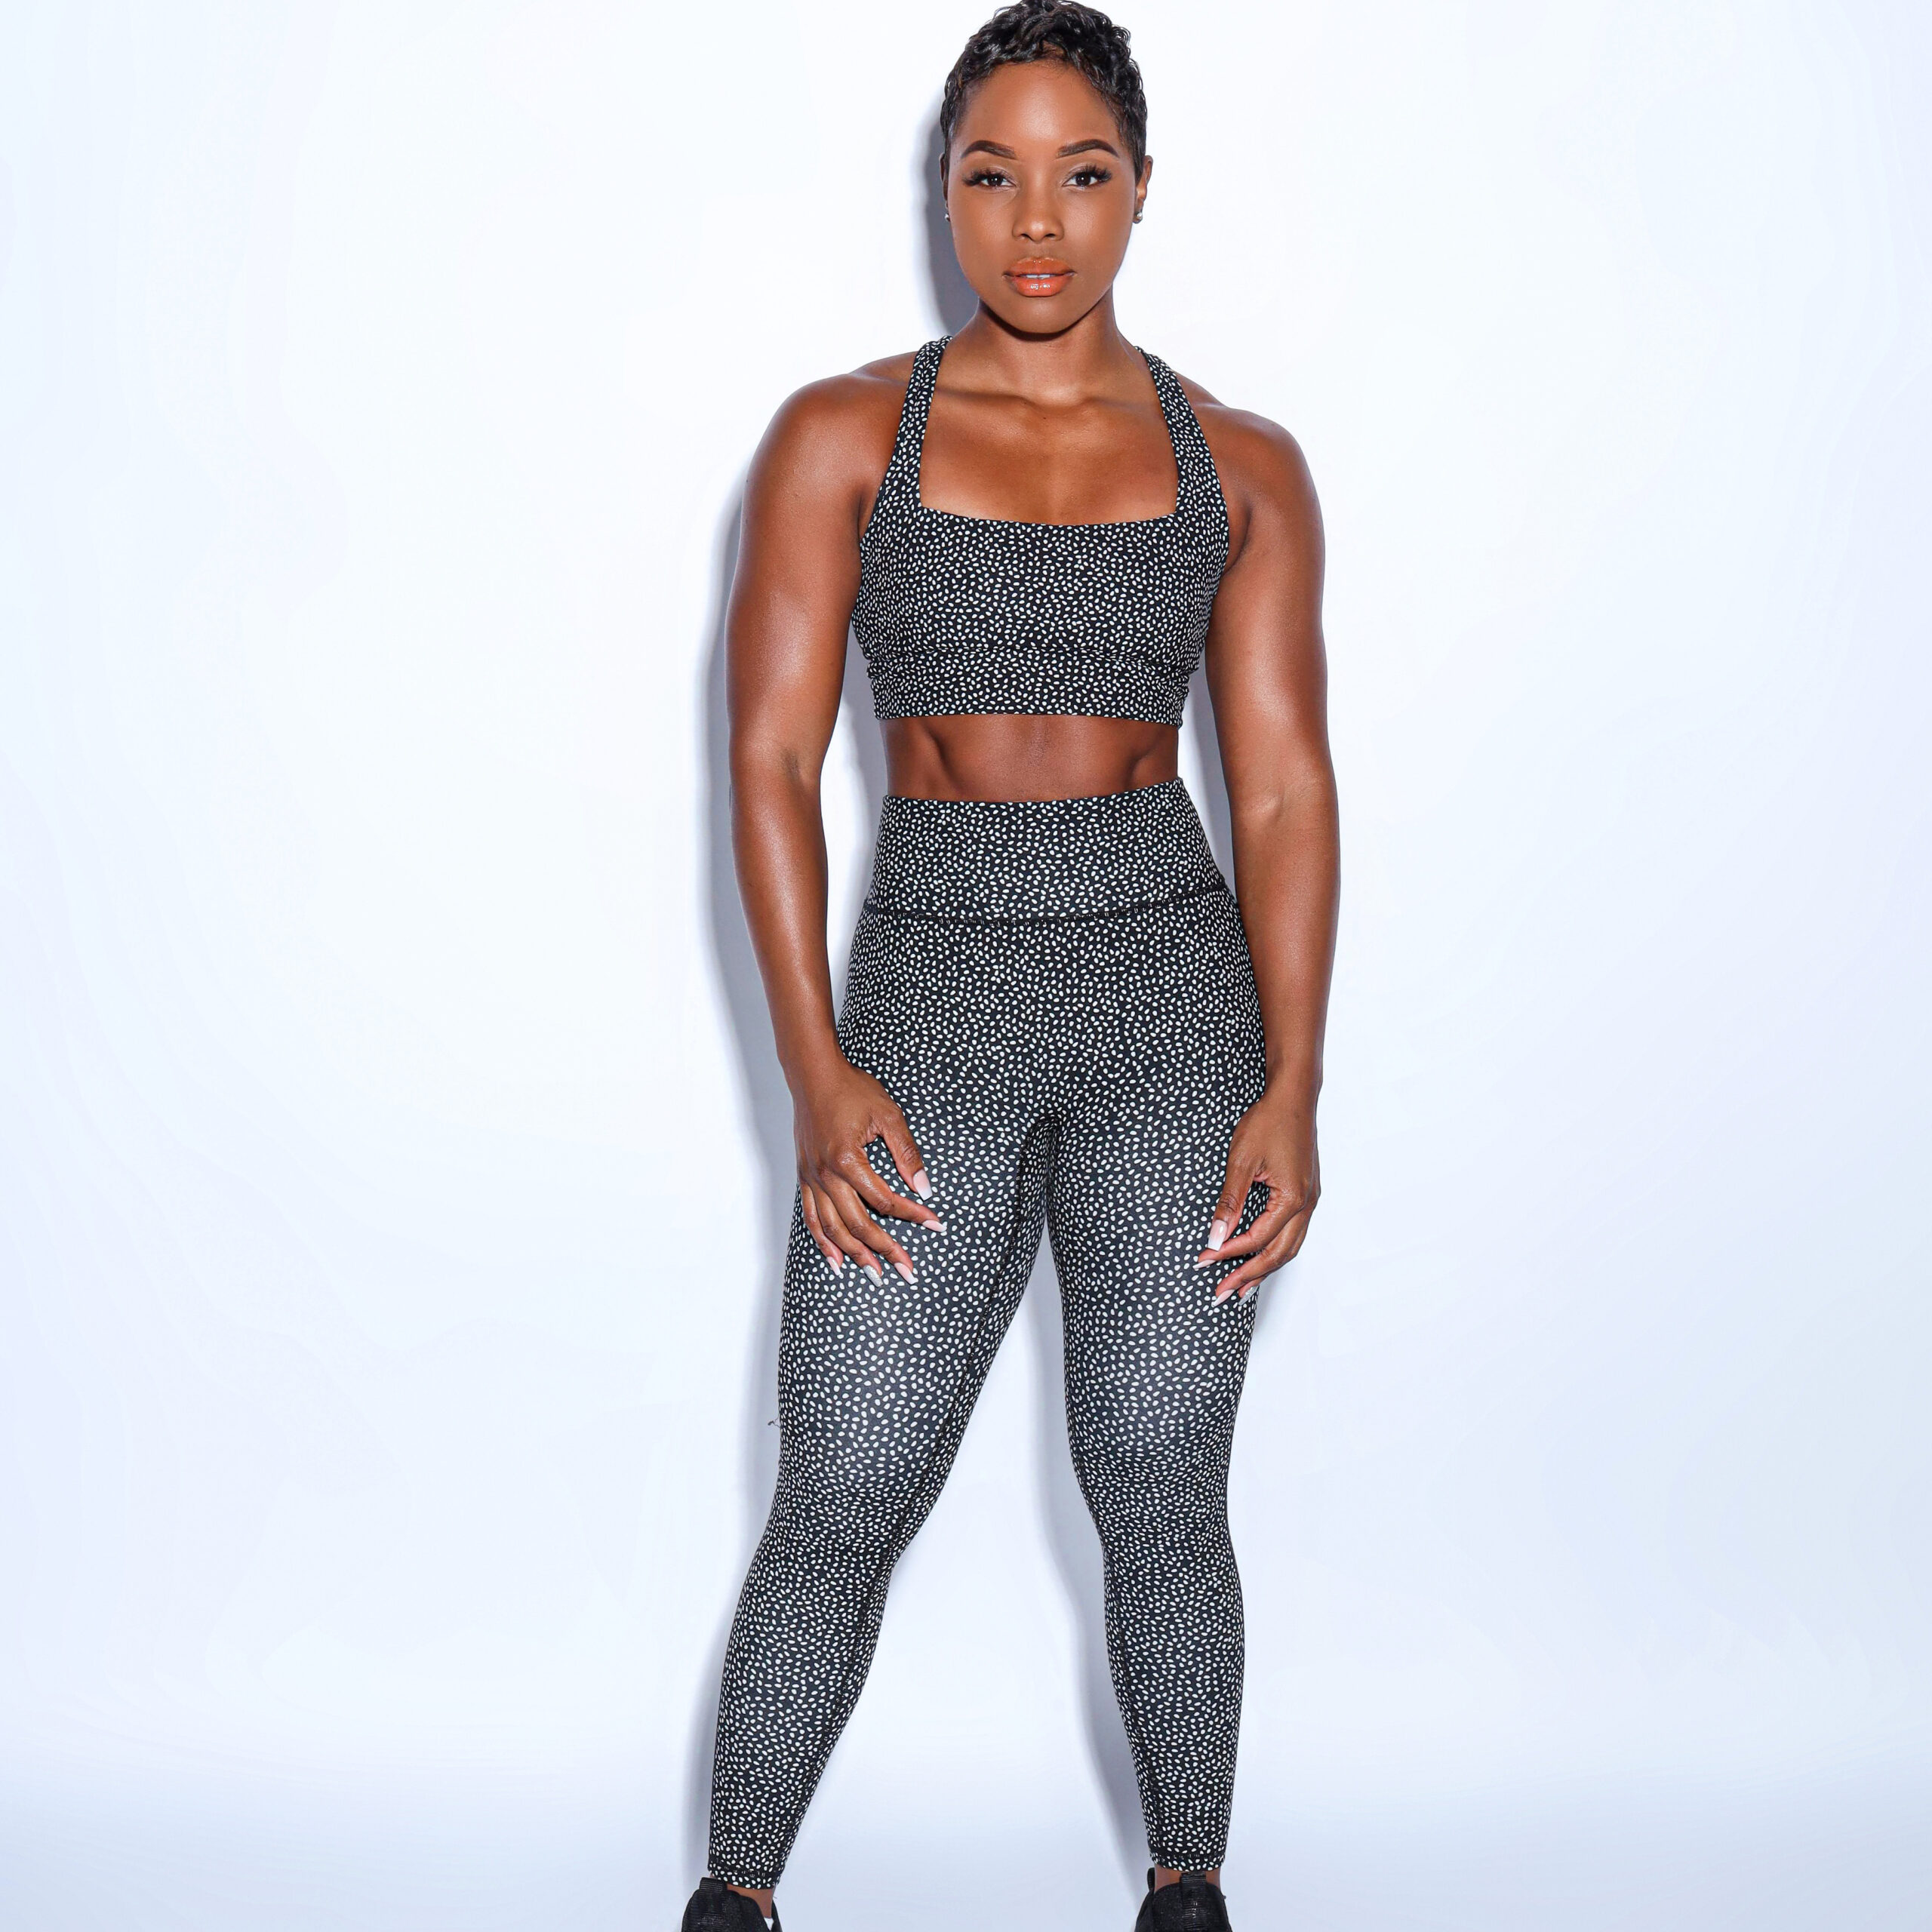 Raw Fitness and Destiny Monroe the Fitness Professional 6